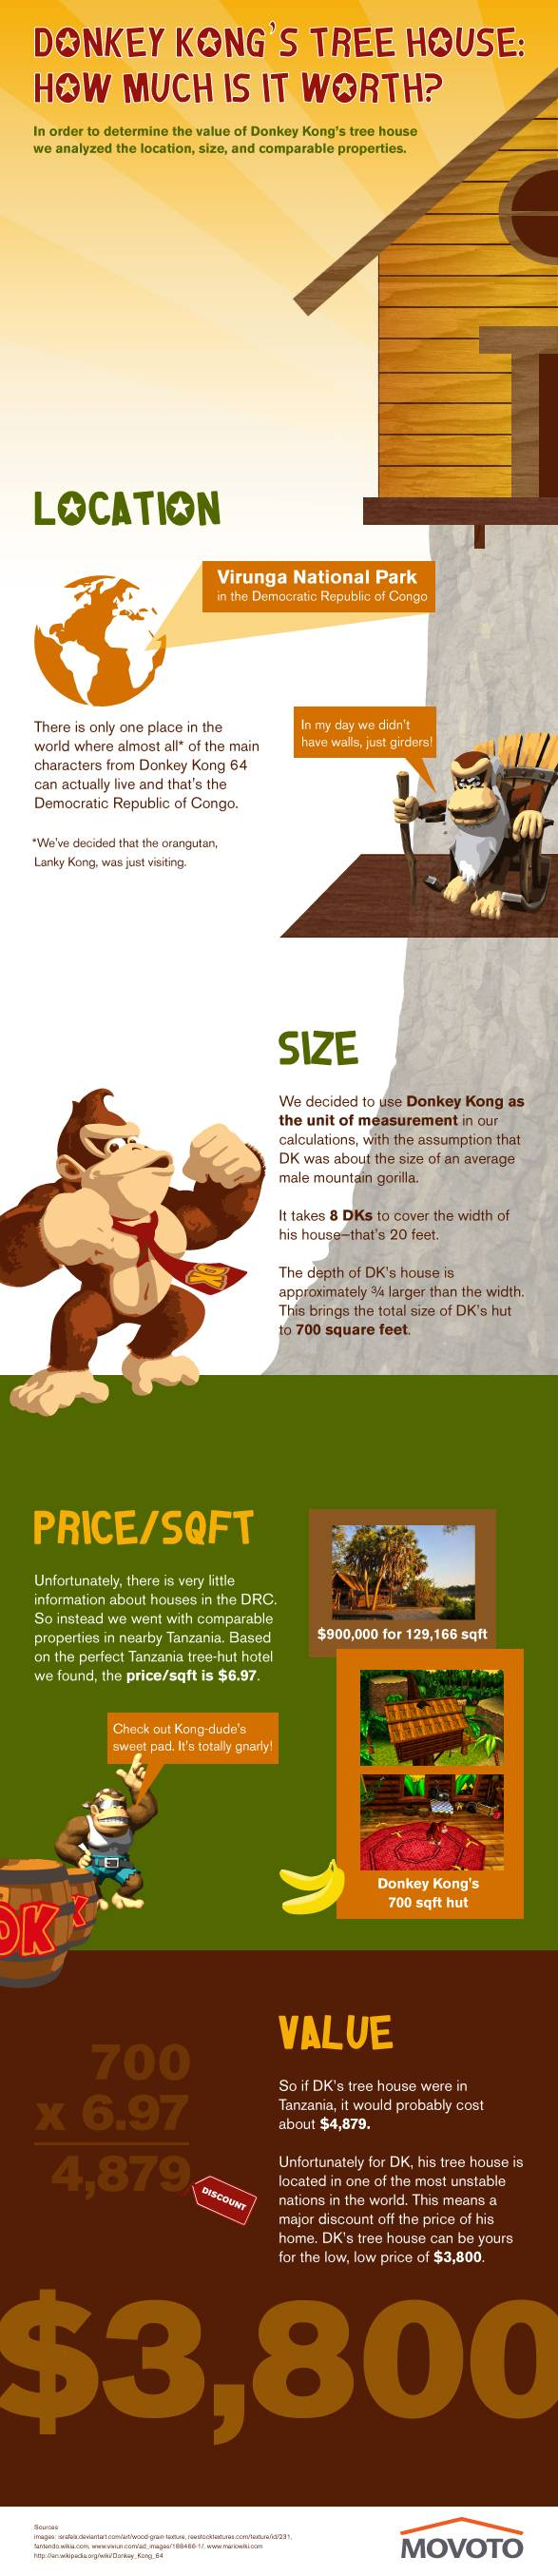 Donkey Kong Tree House For Sale